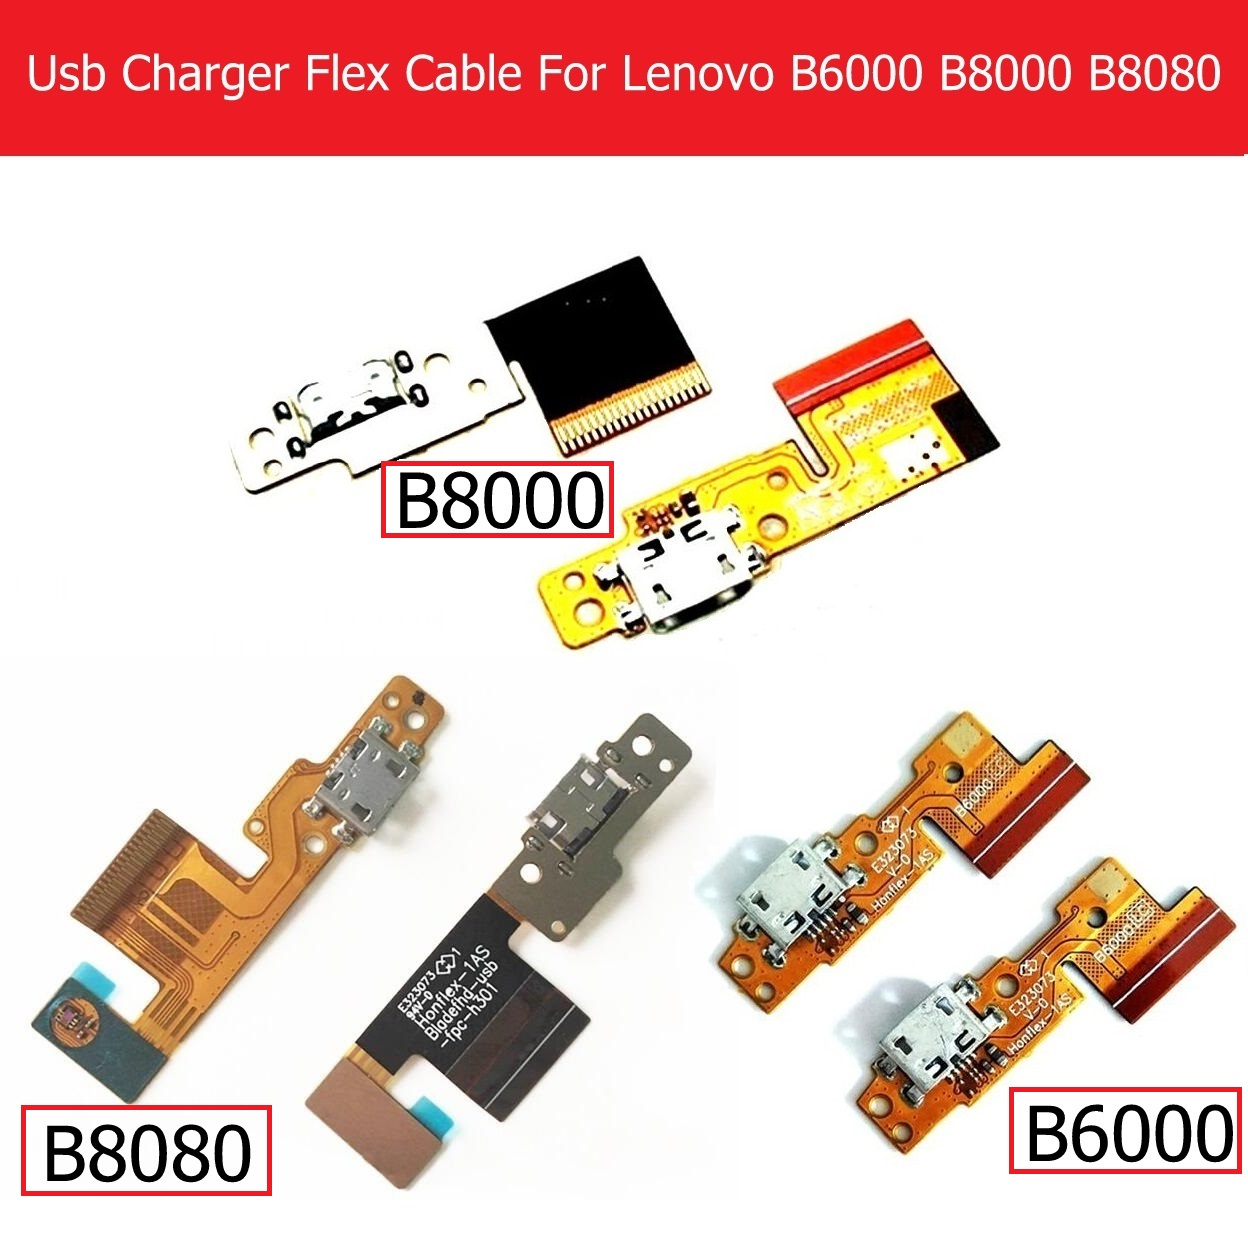 Genuine USB Charger Connector Flex Cable For Lenovo Pad B8000 B8080 10.1 USB Charging For Lenovo B6000 pad Charger Flex Cable original usb charging dock charger port flex cable for iphone 7 high quality headphone audio jack connector flex cable